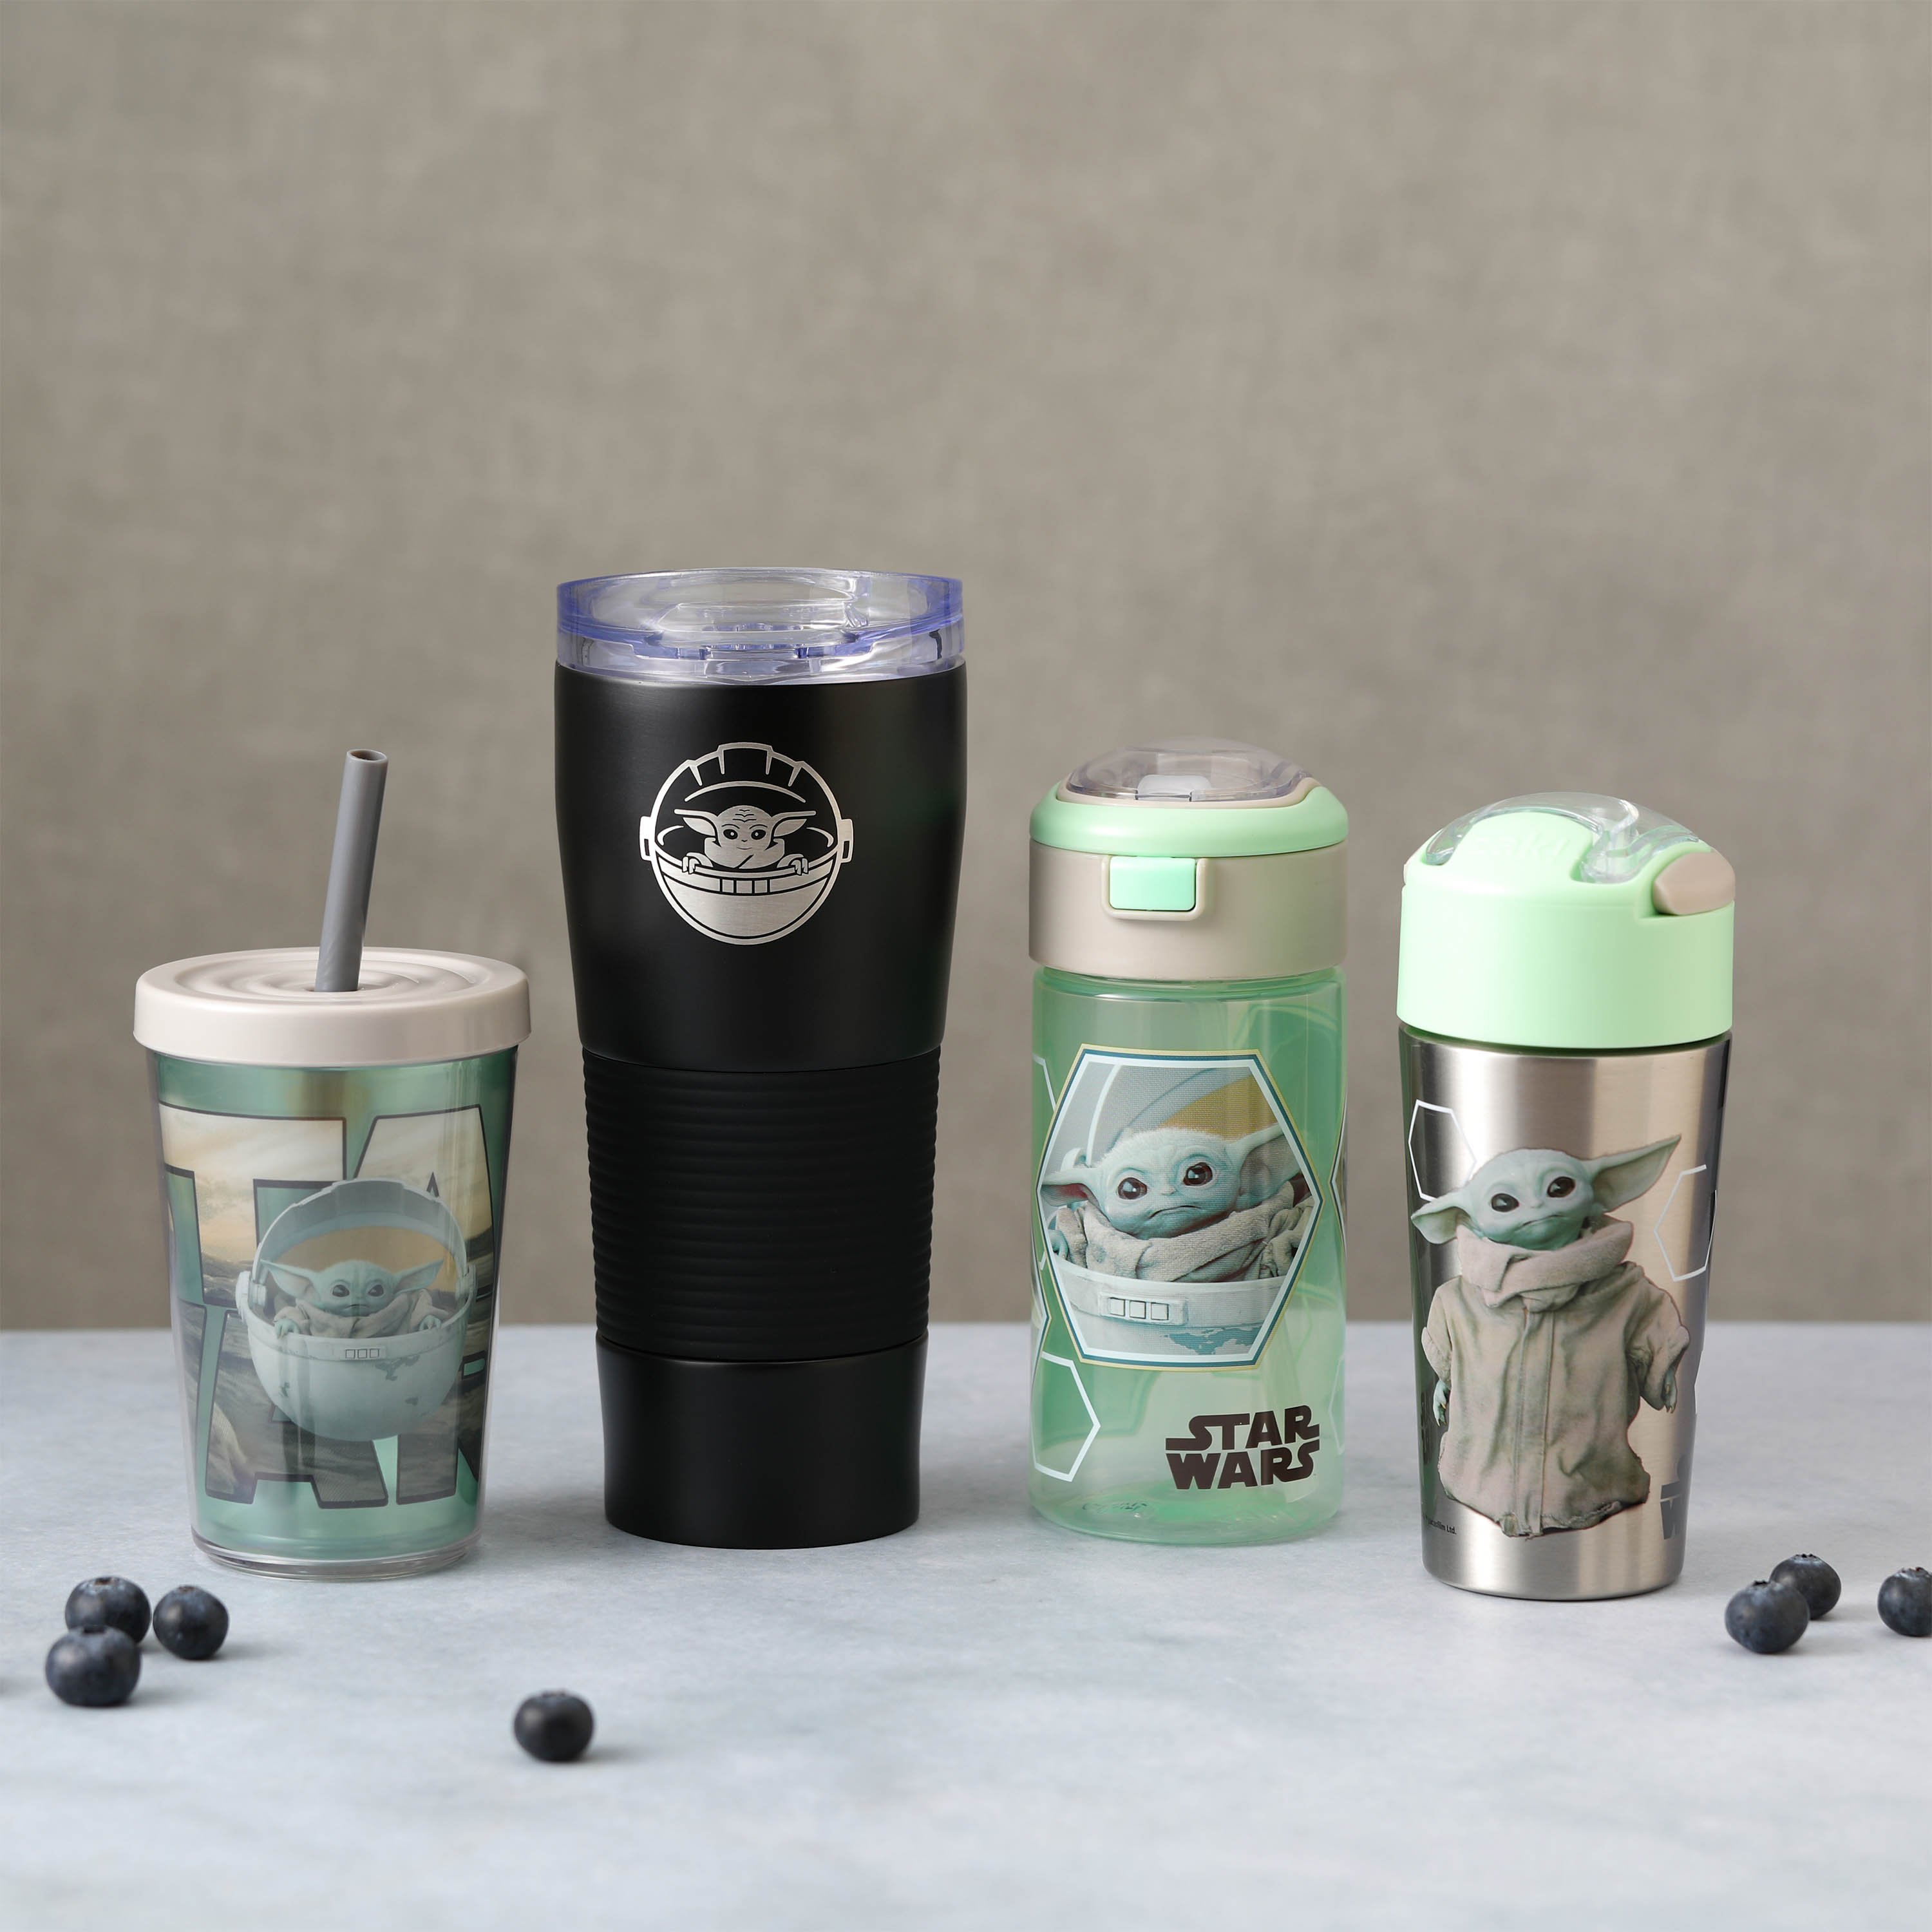 Star Wars: The Mandalorian 18 ounce Reusable Water Bottle with Straw, The Mandalorian slideshow image 3